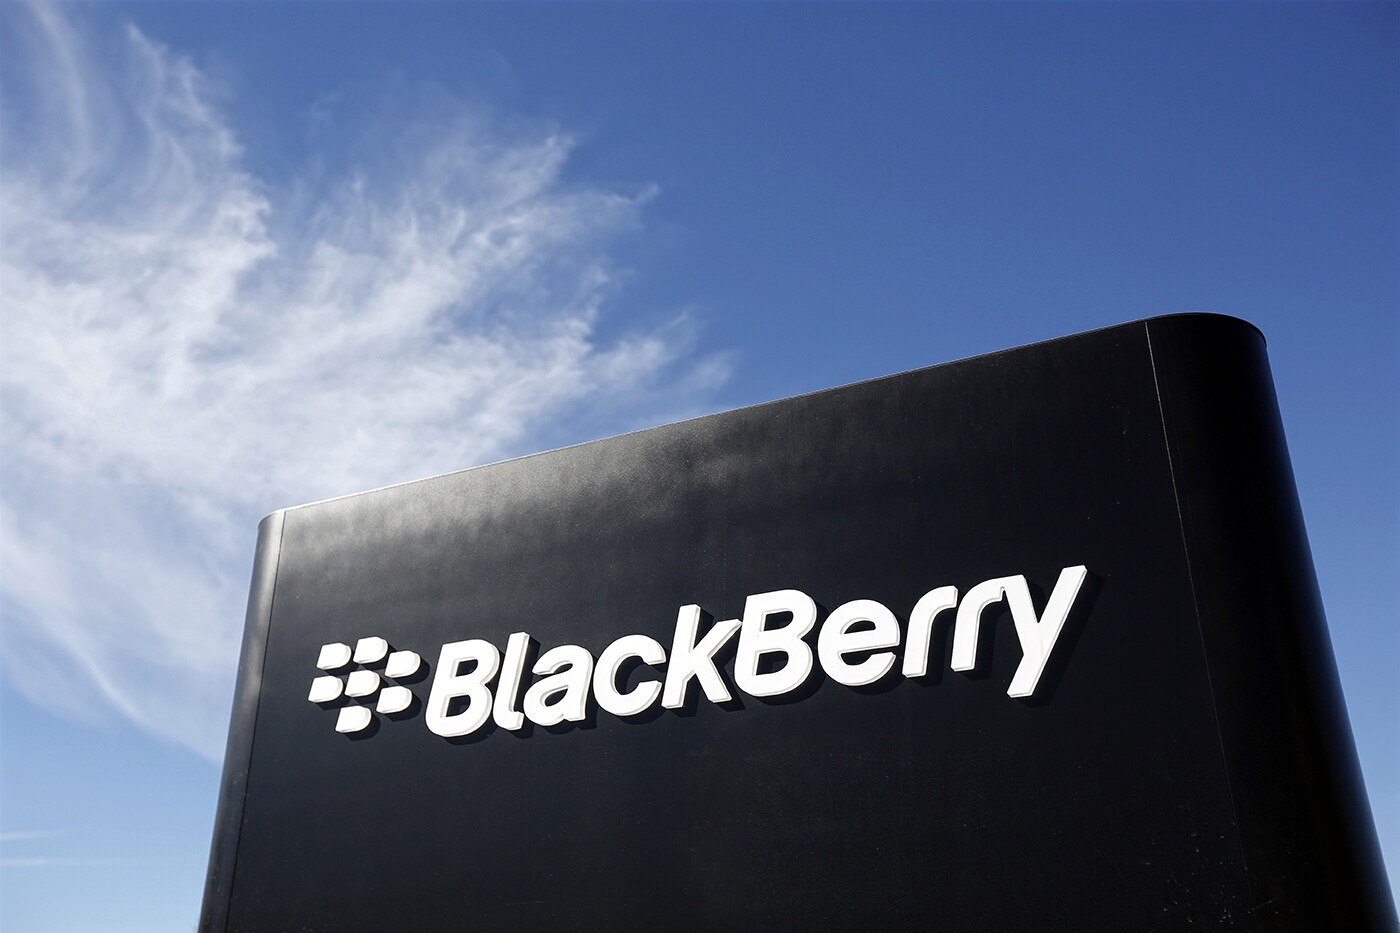 BlackBerry will announce Year-End and Q4 fiscal 2017 results on March 31